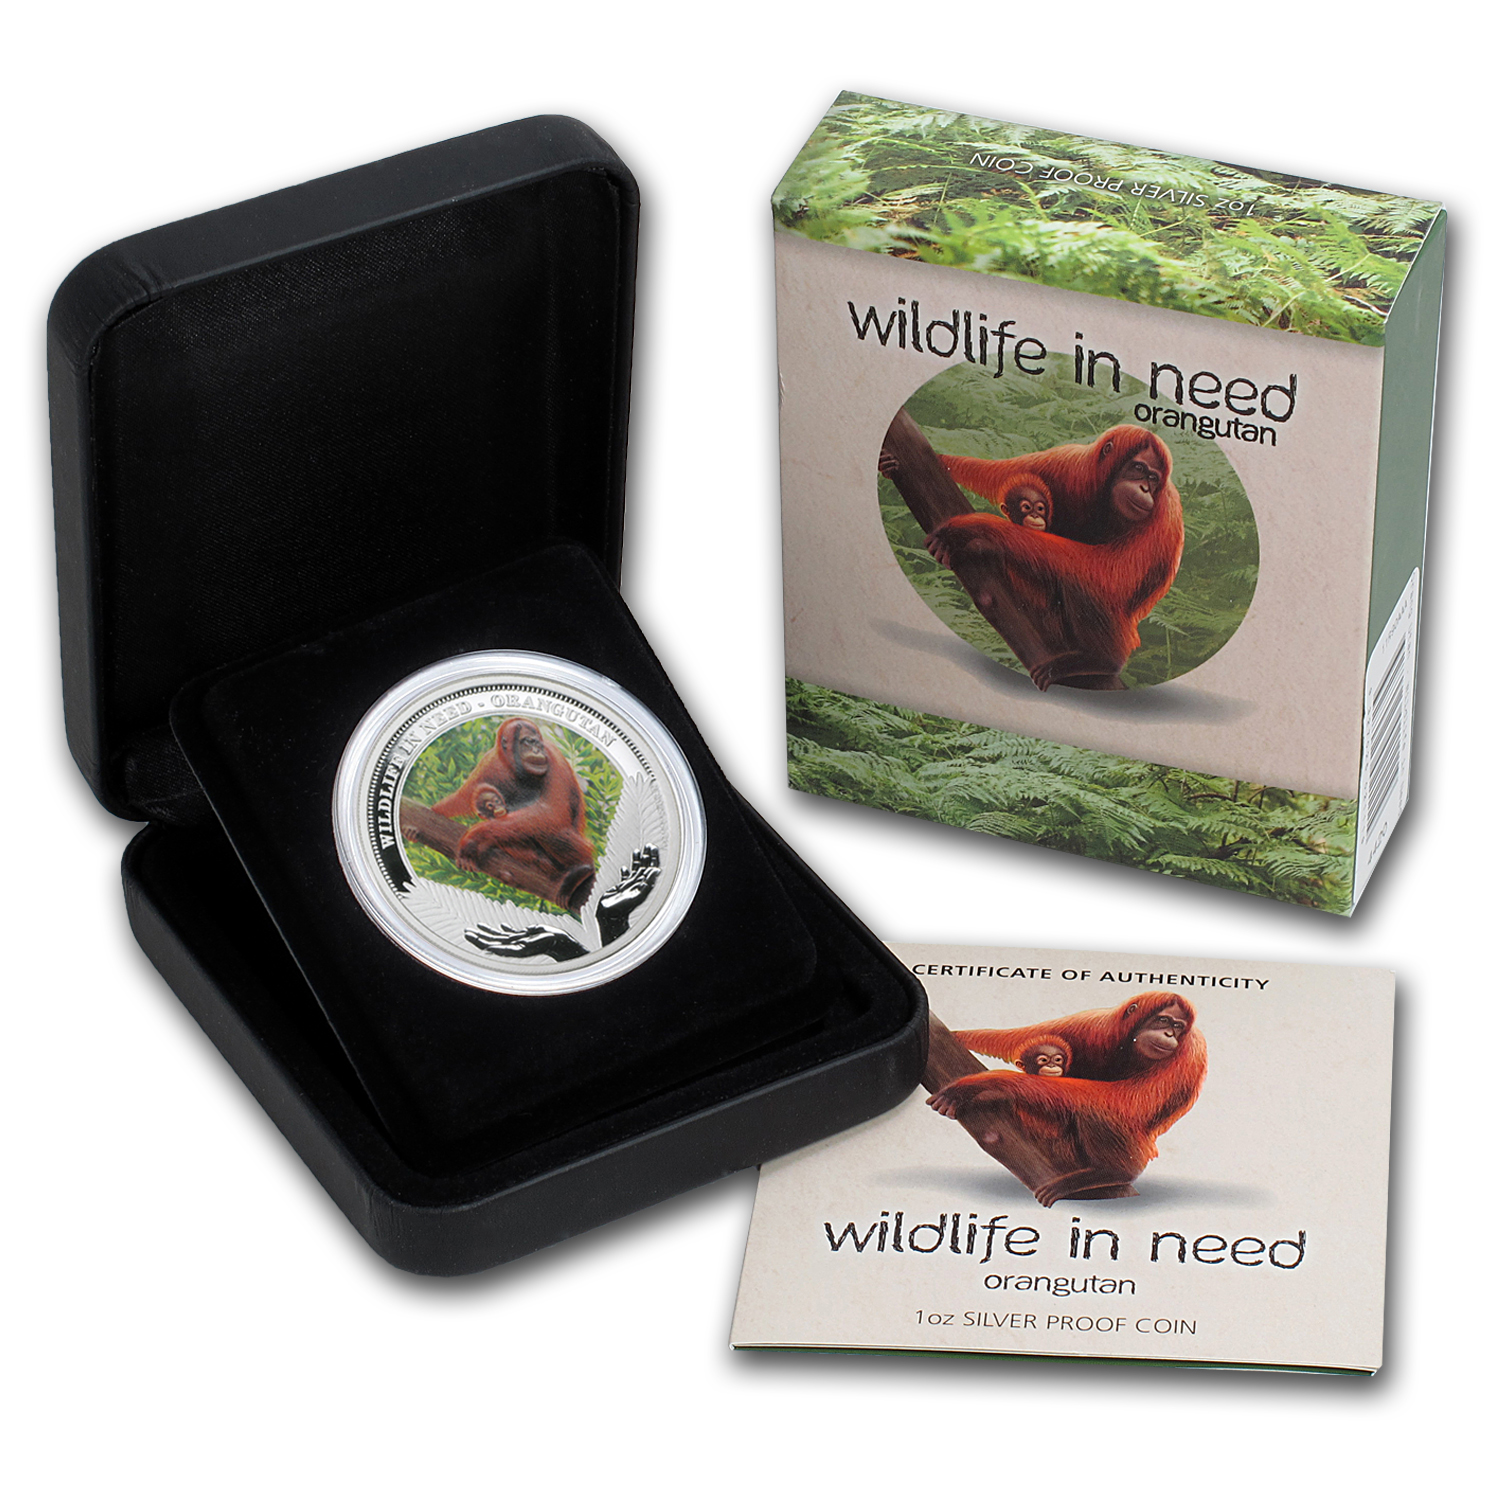 2011 1 oz Proof Silver Orangutan- Wildlife in need Series